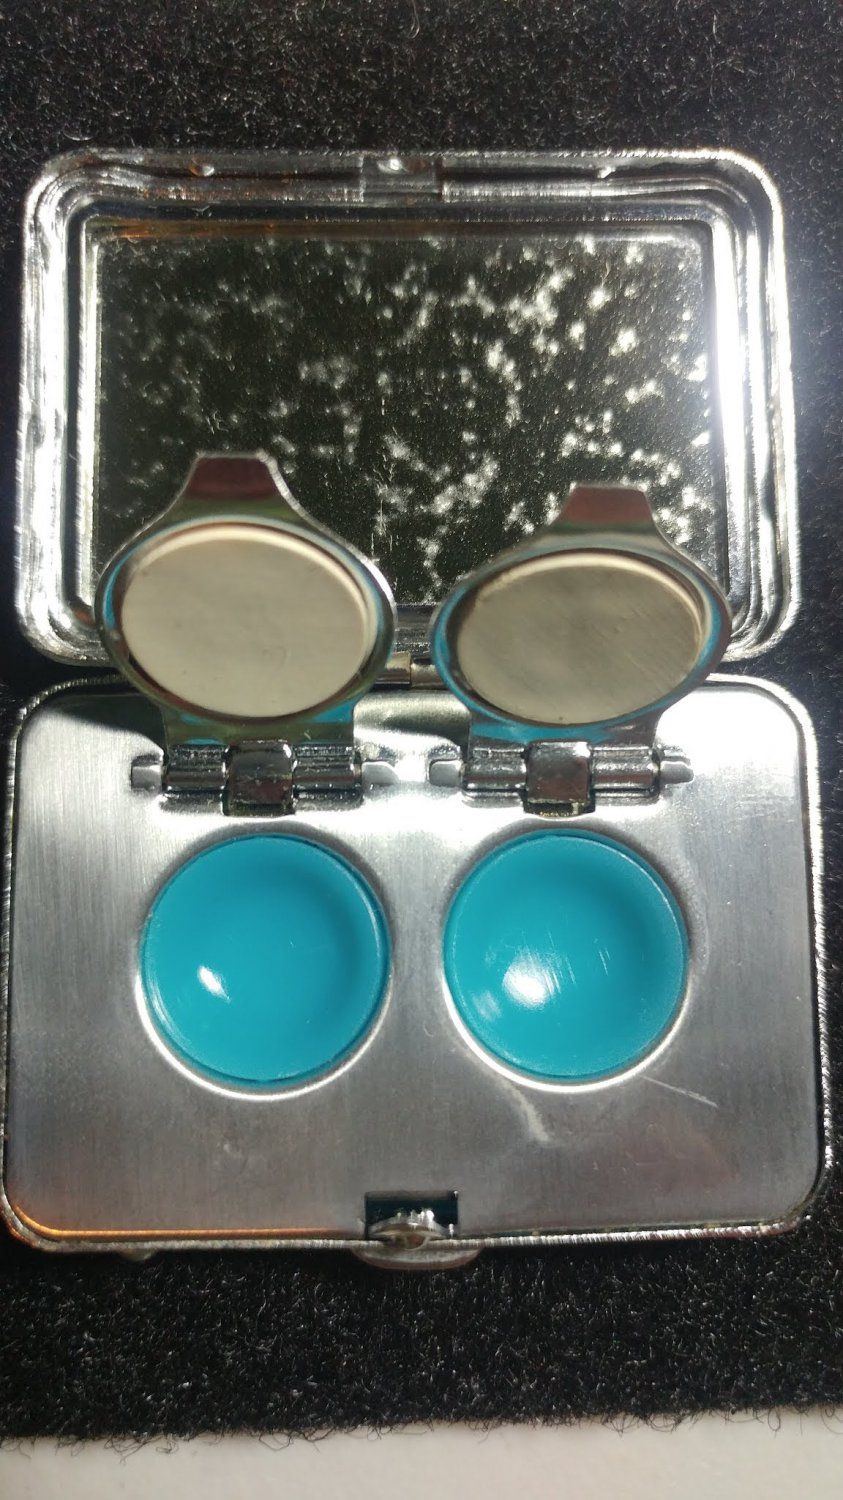 Rare Vintage 1967 Rainbow Opt Lab Stainless Steel Contact Lens Case Contact Lenses Case Contact Lenses Lens